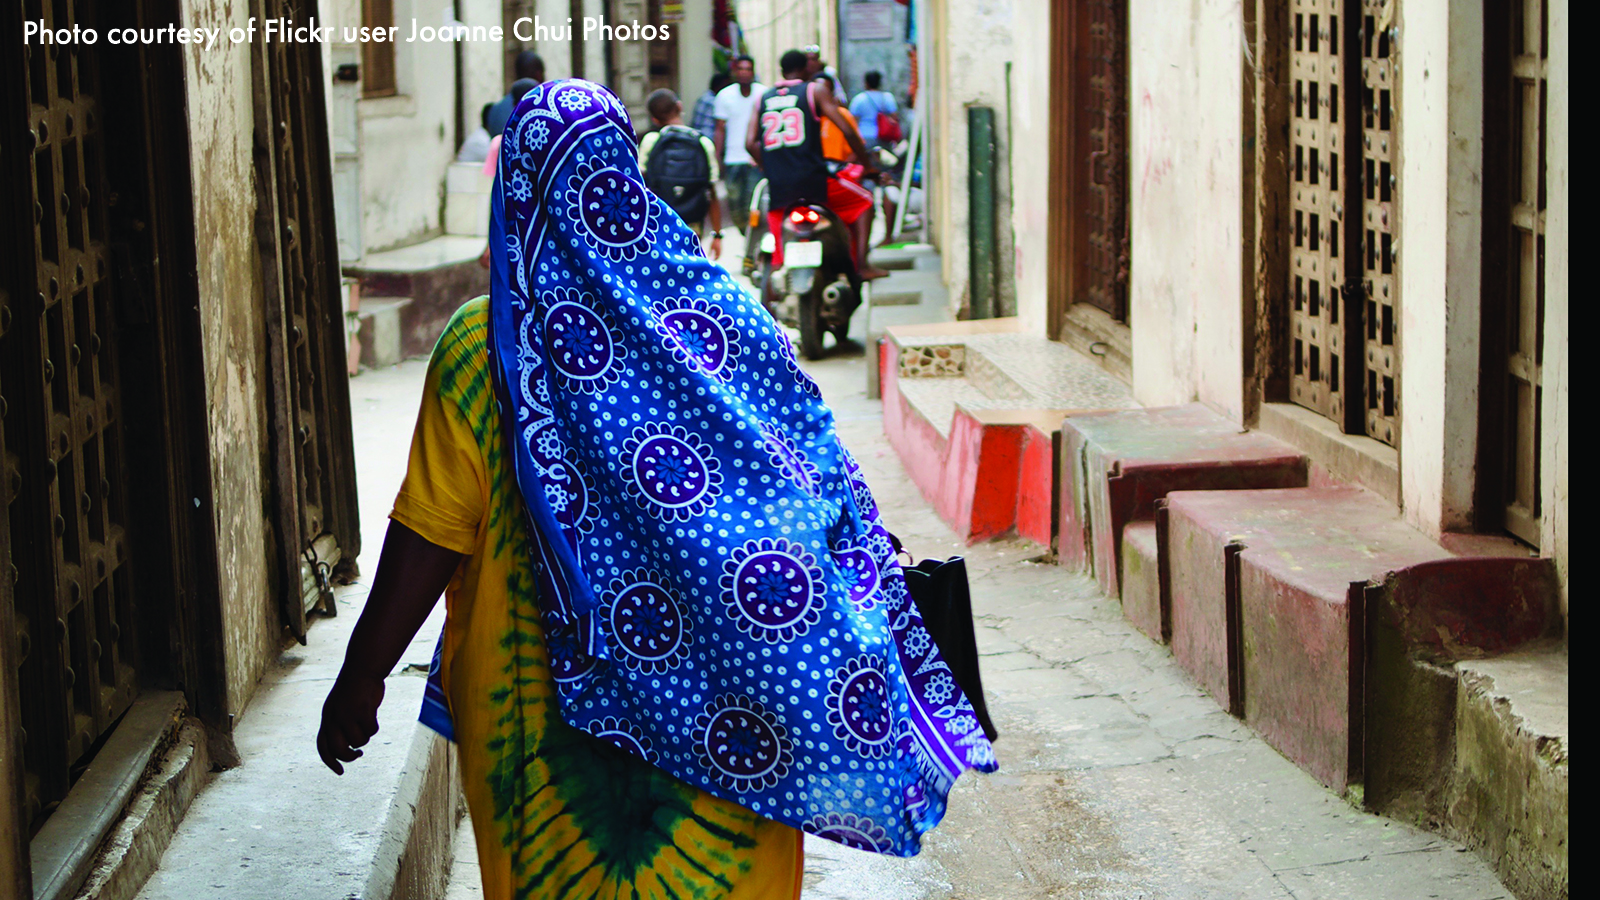 Tanzanian woman in blue headscarf and yellow dress walking down the street